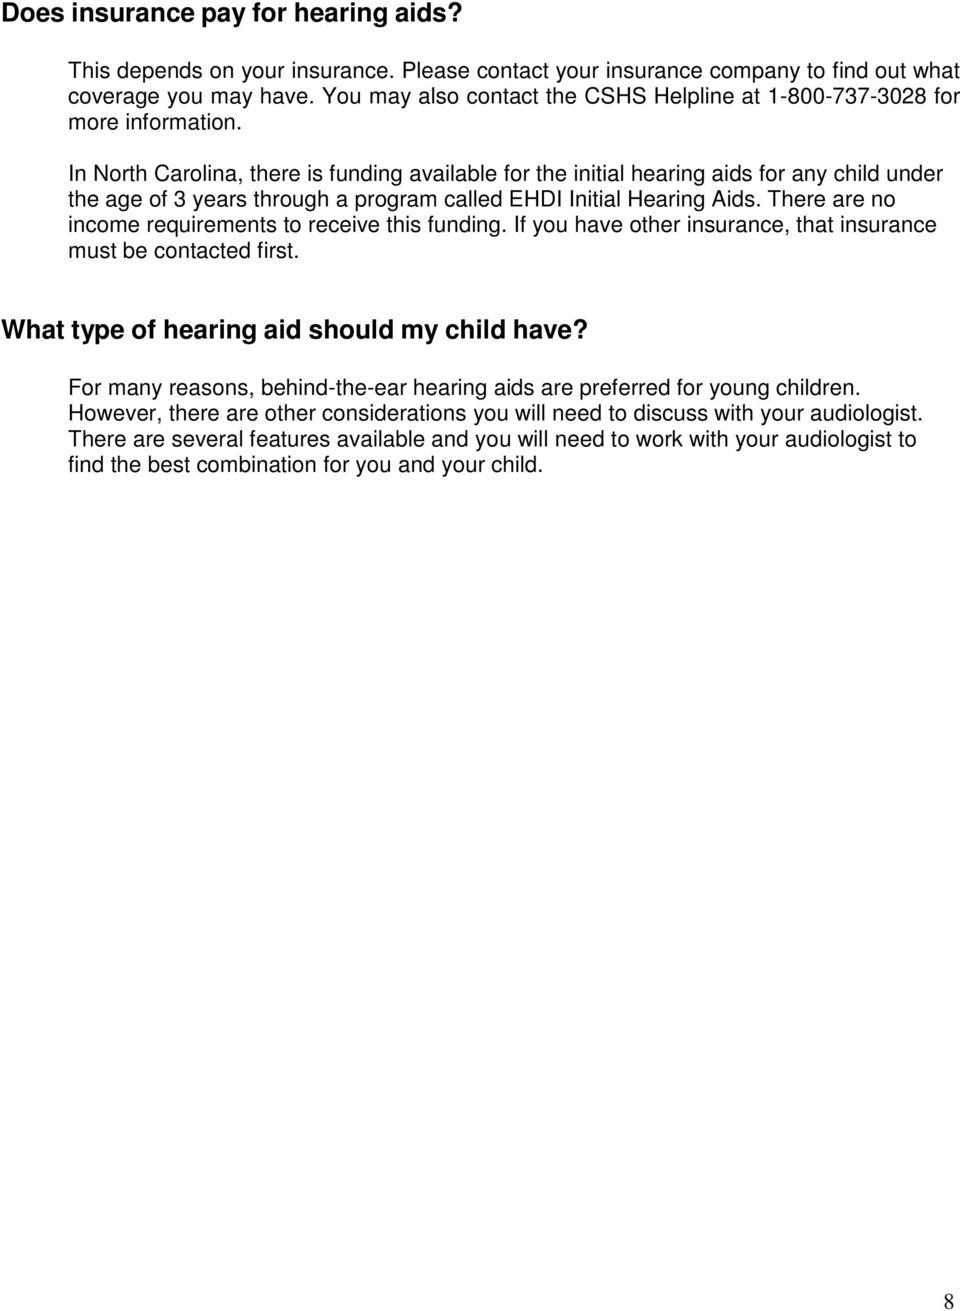 In North Carolina, there is funding available for the initial hearing aids for any child under the age of 3 years through a program called EHDI Initial Hearing Aids.